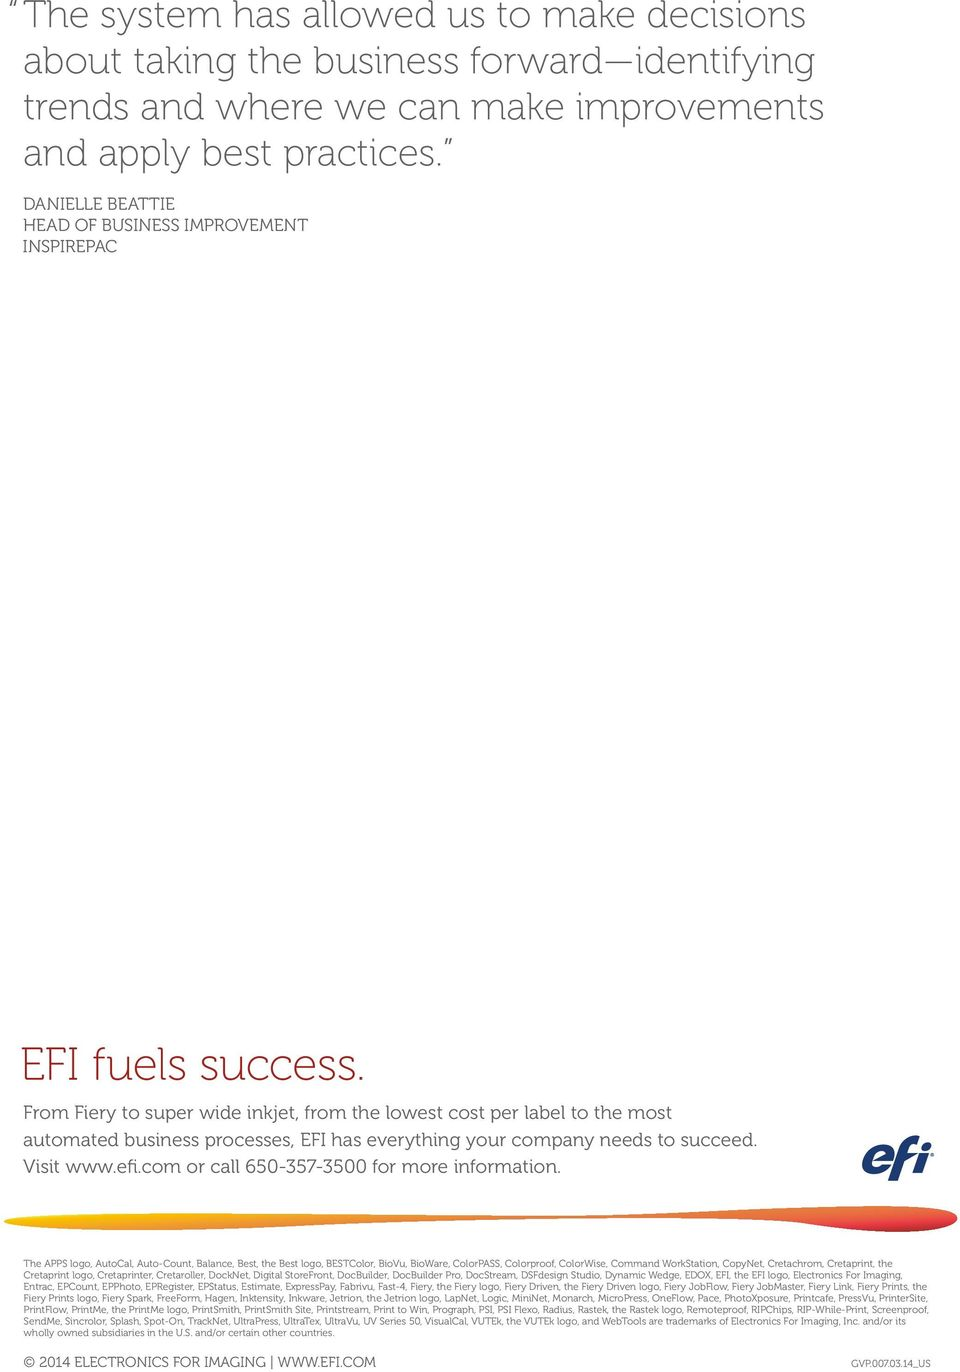 From Fiery to super wide inkjet, from the lowest cost per label to the most automated business processes, EFI has everything your company needs to succeed. Visit www.efi.